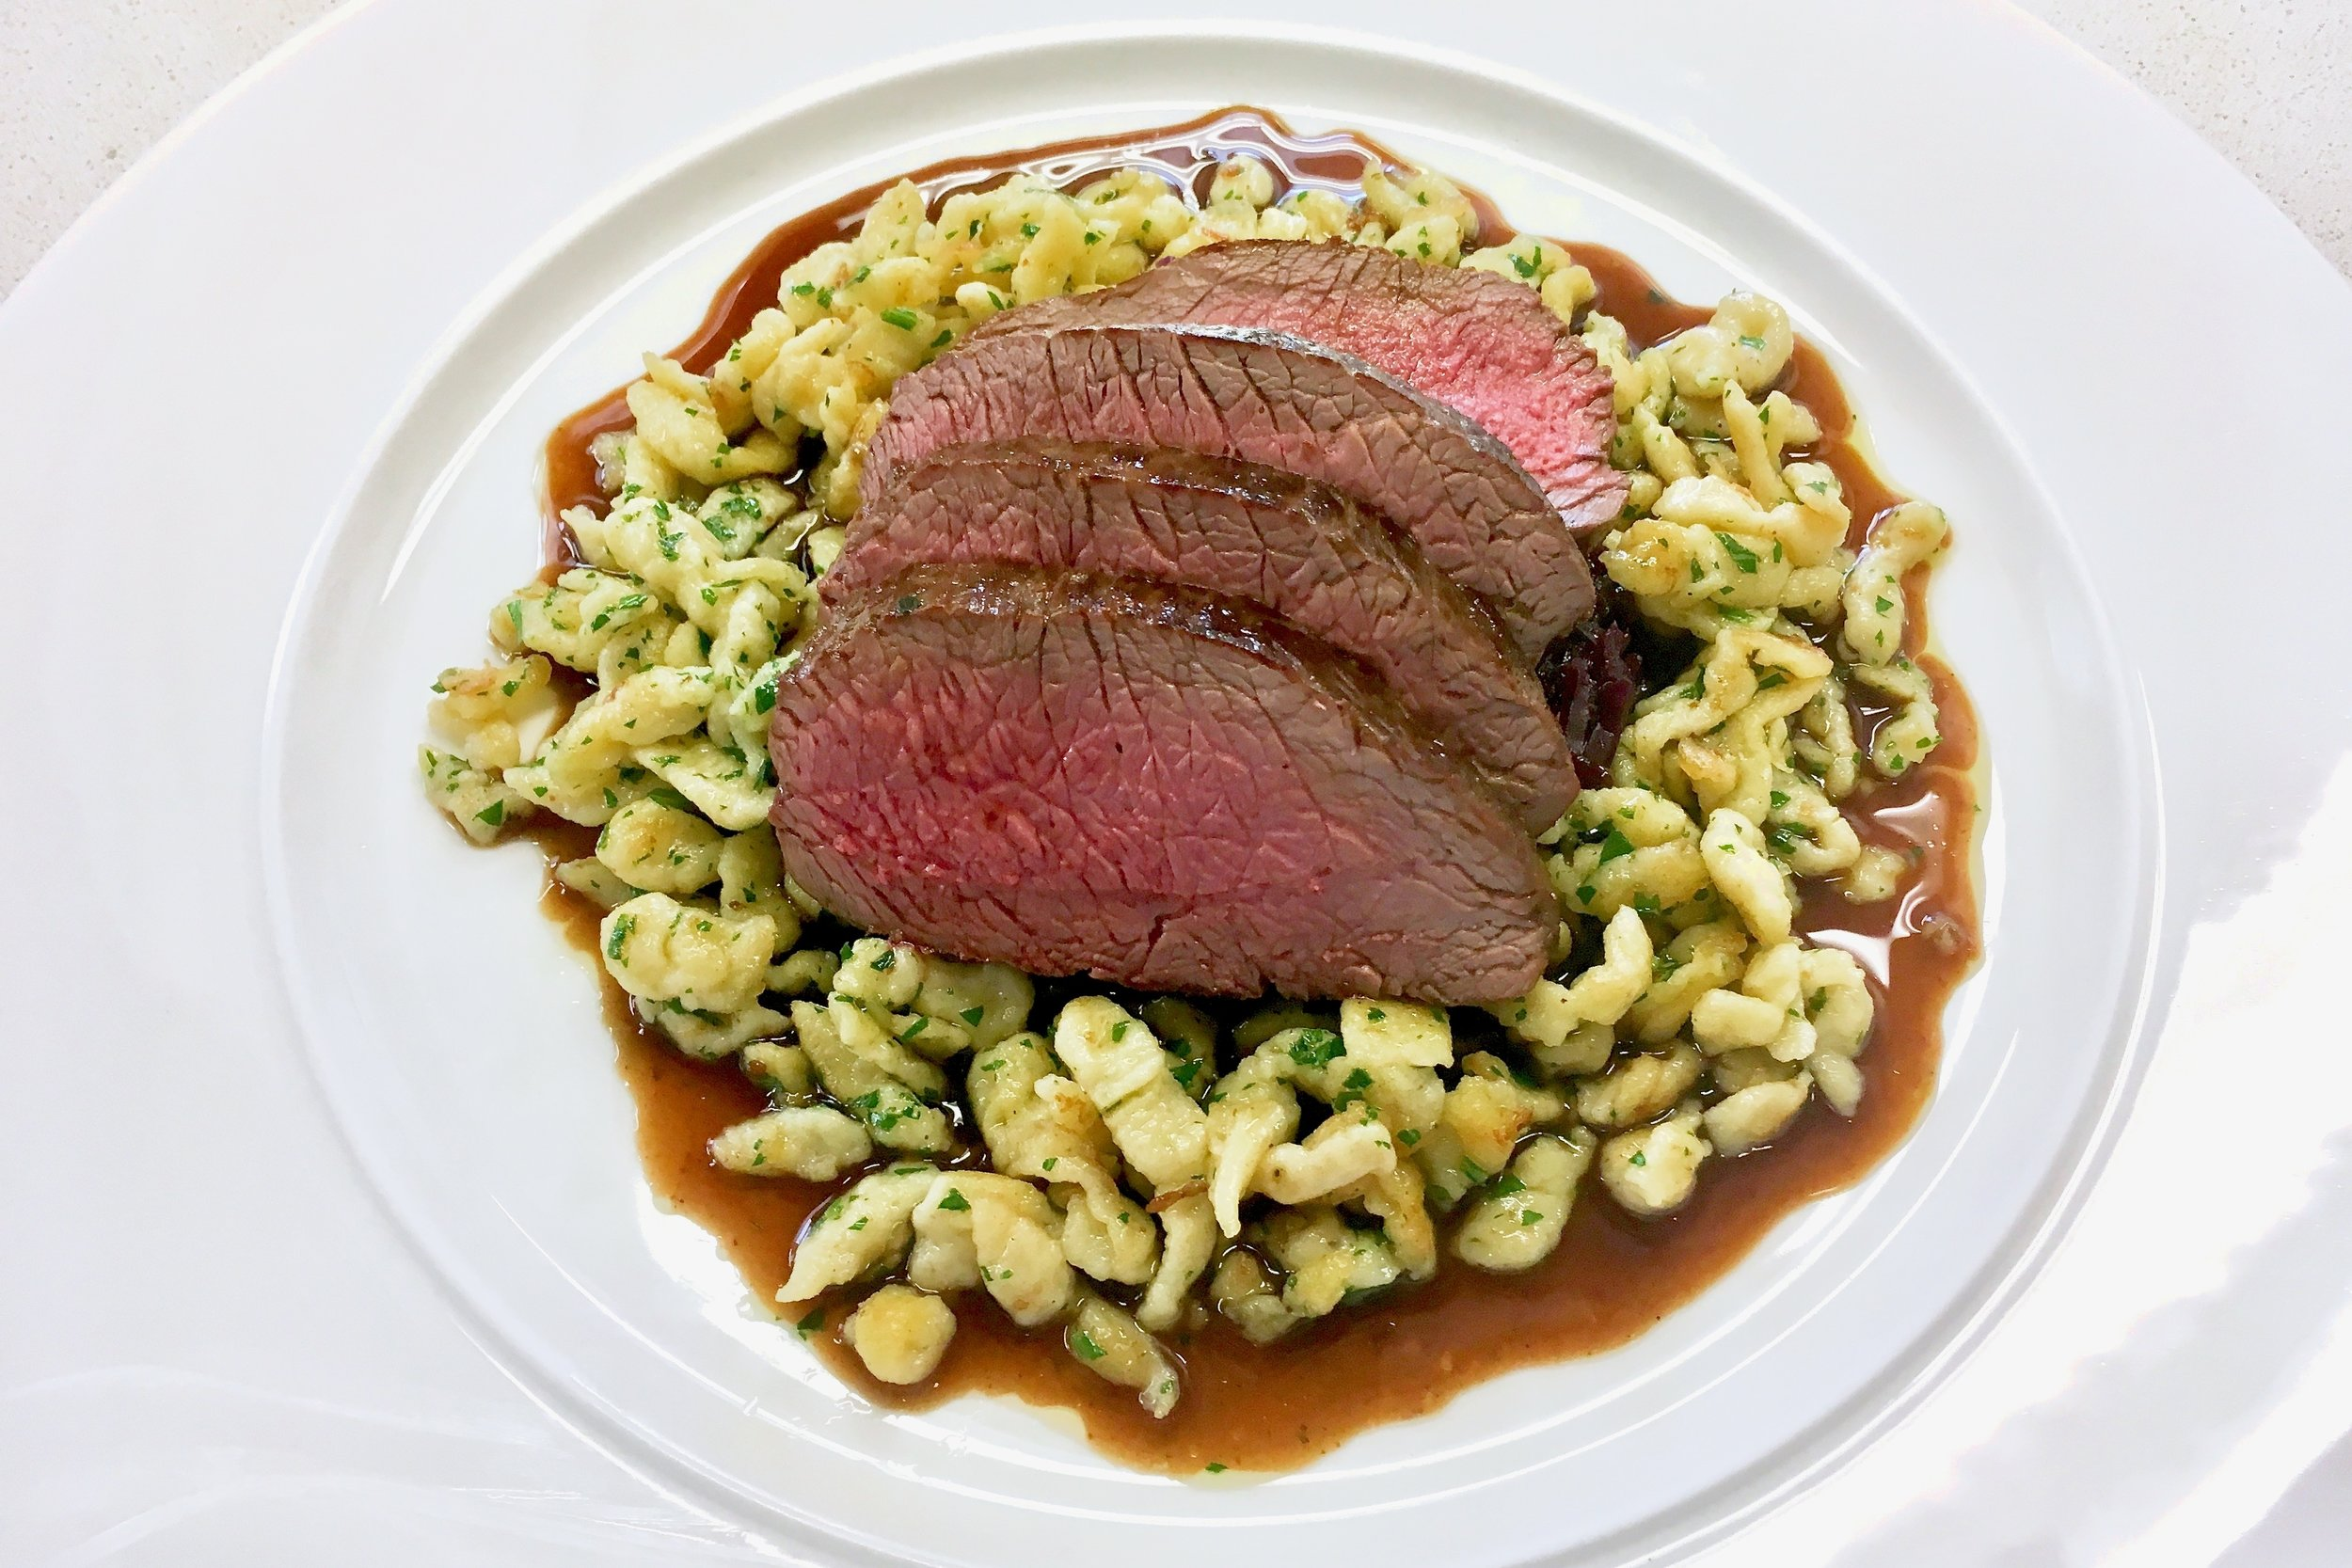 Venison loin with spätzle and red cabbage